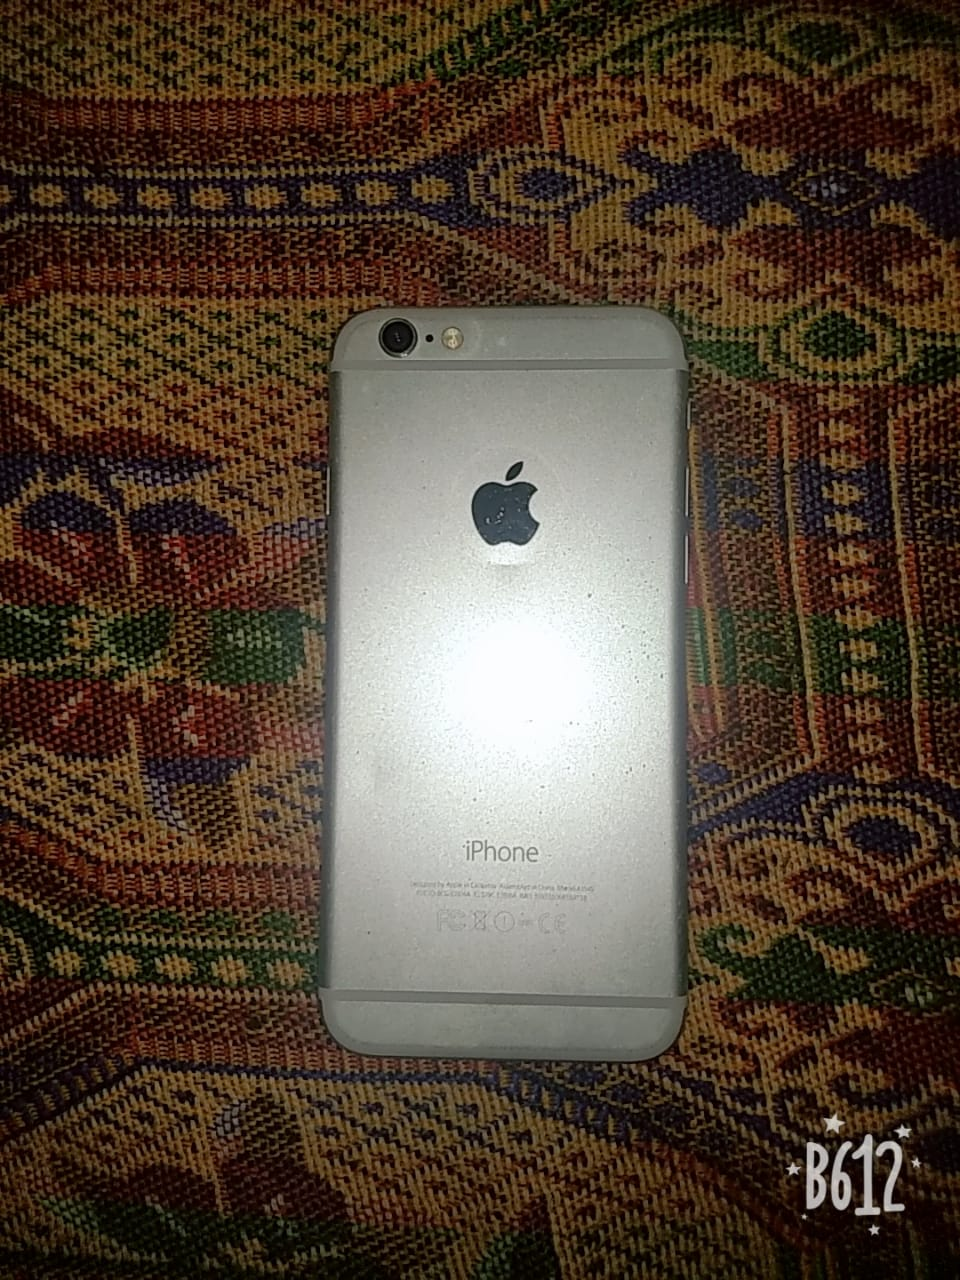 iPhone 64 gb in good condition golden color - photo 1